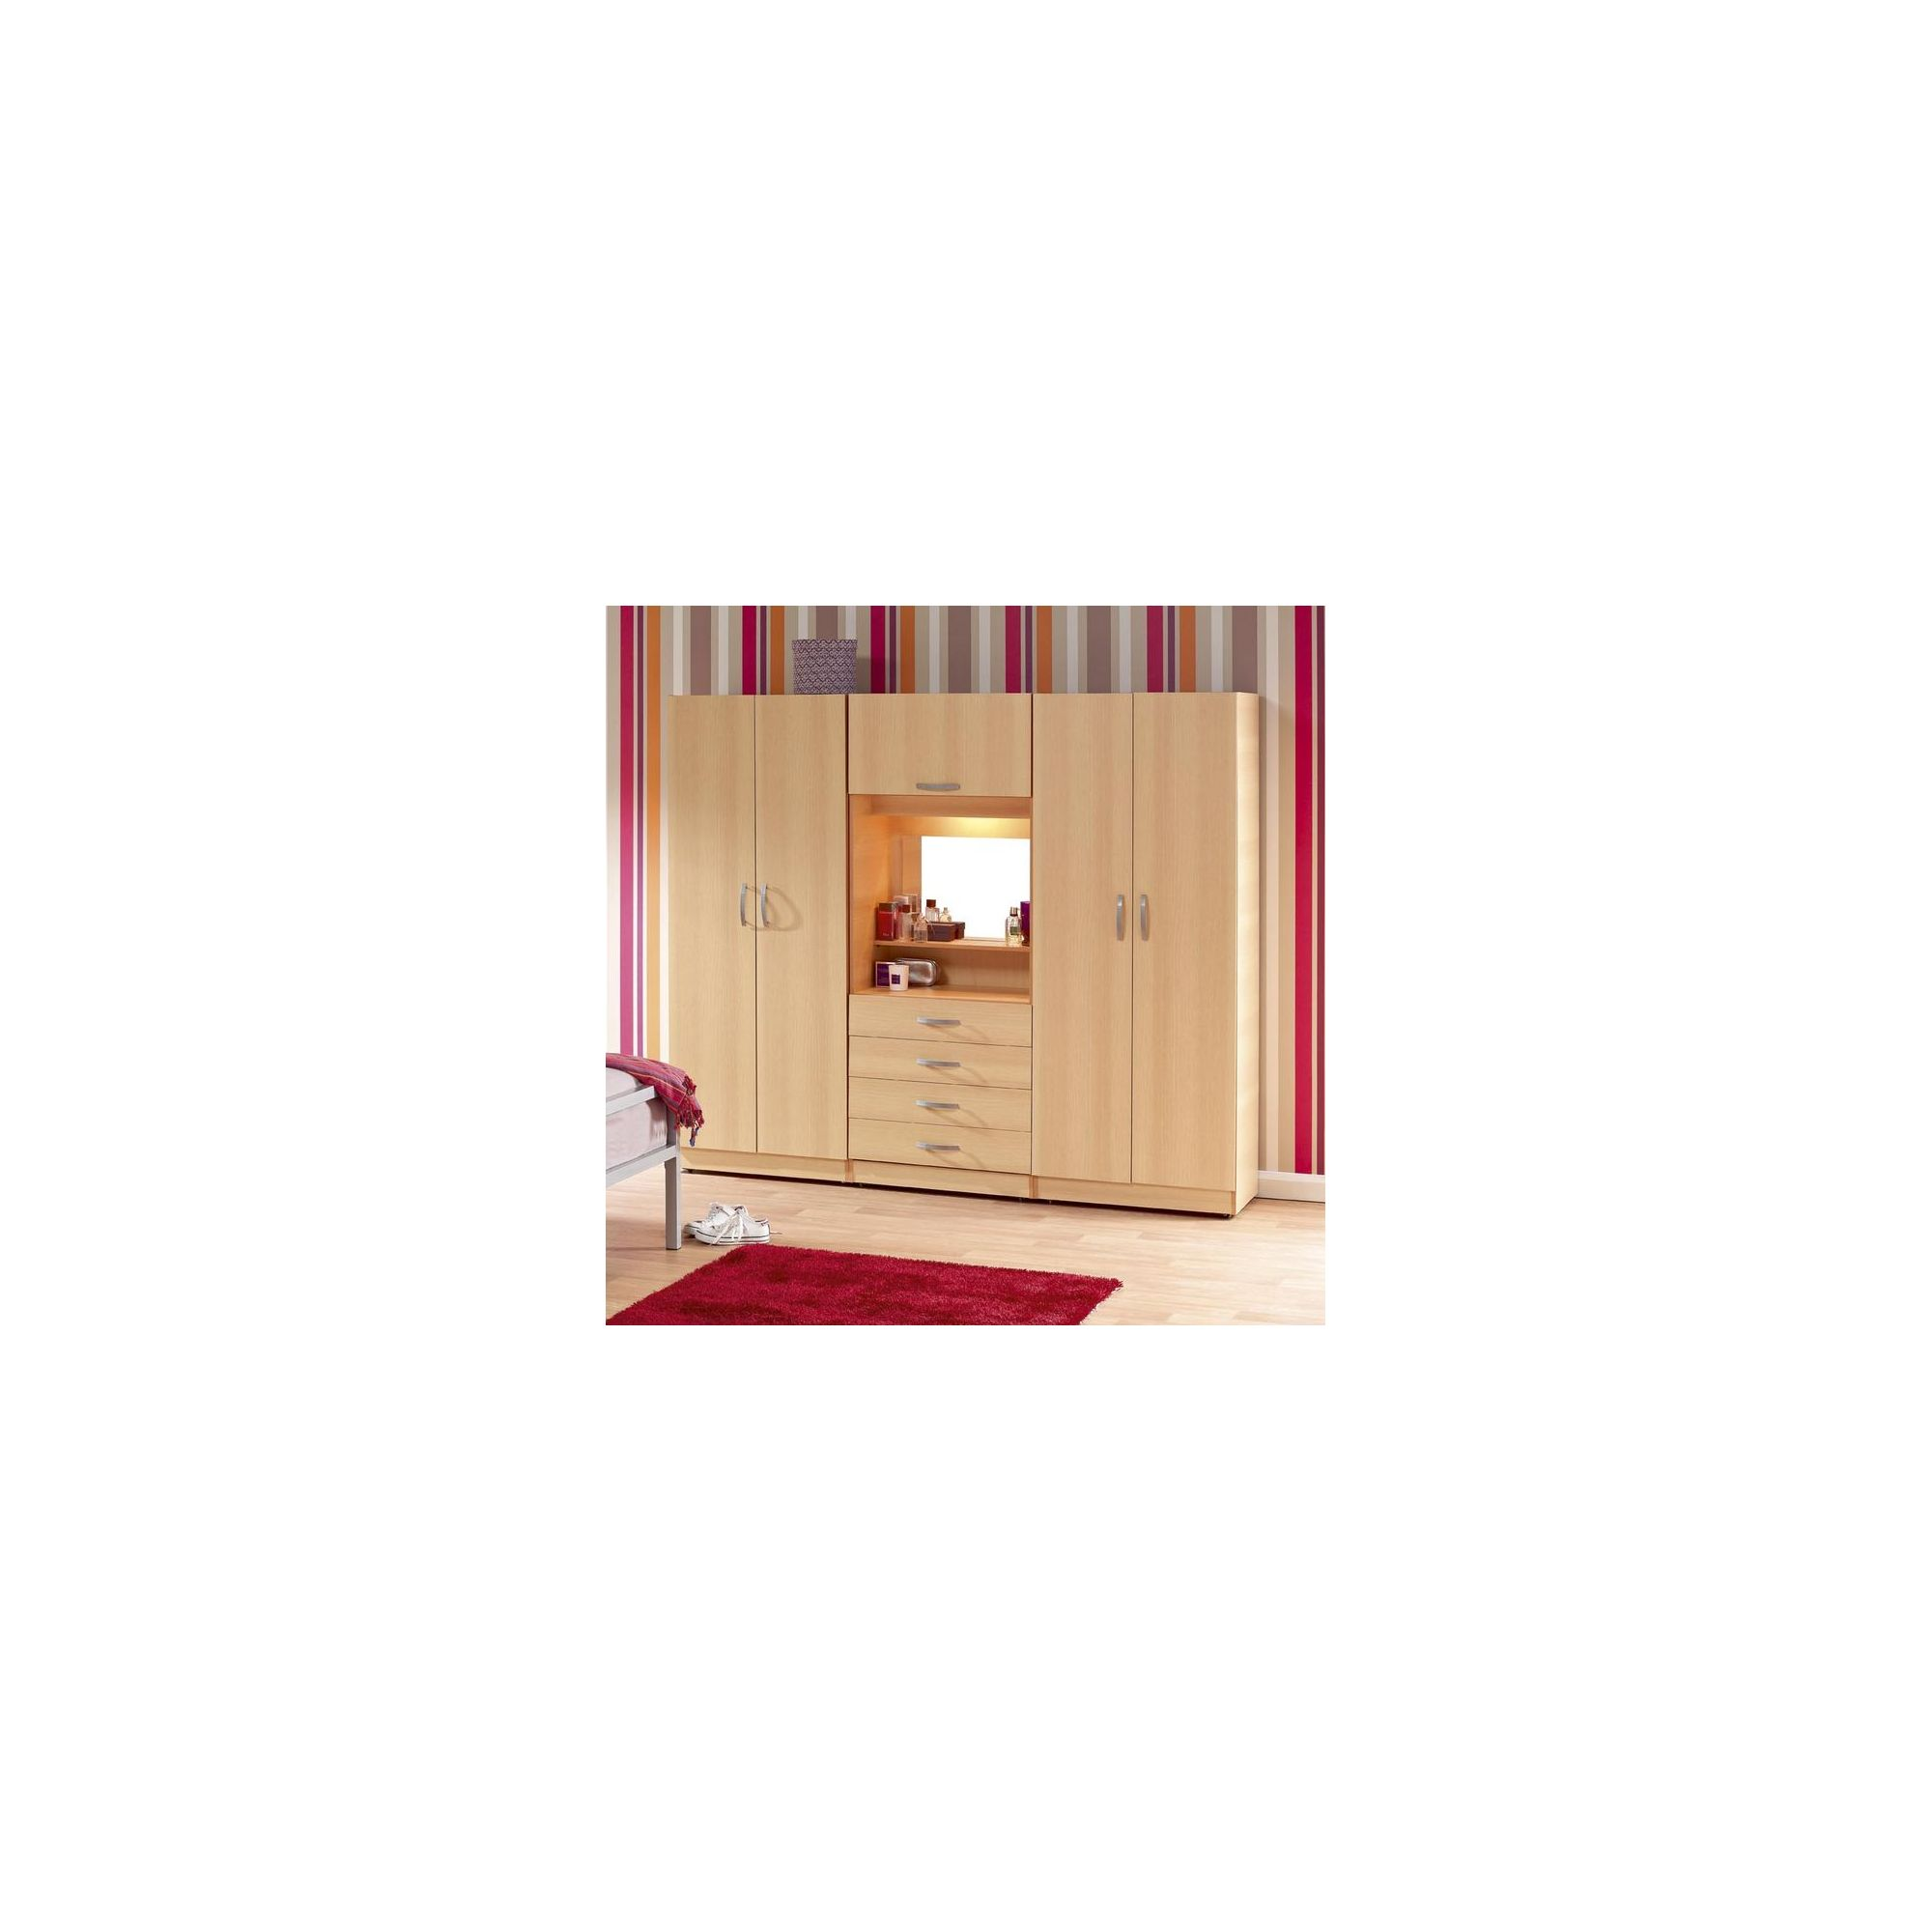 Ideal Furniture Budapest 4 door Wardrobe with drawers - Beech at Tesco Direct